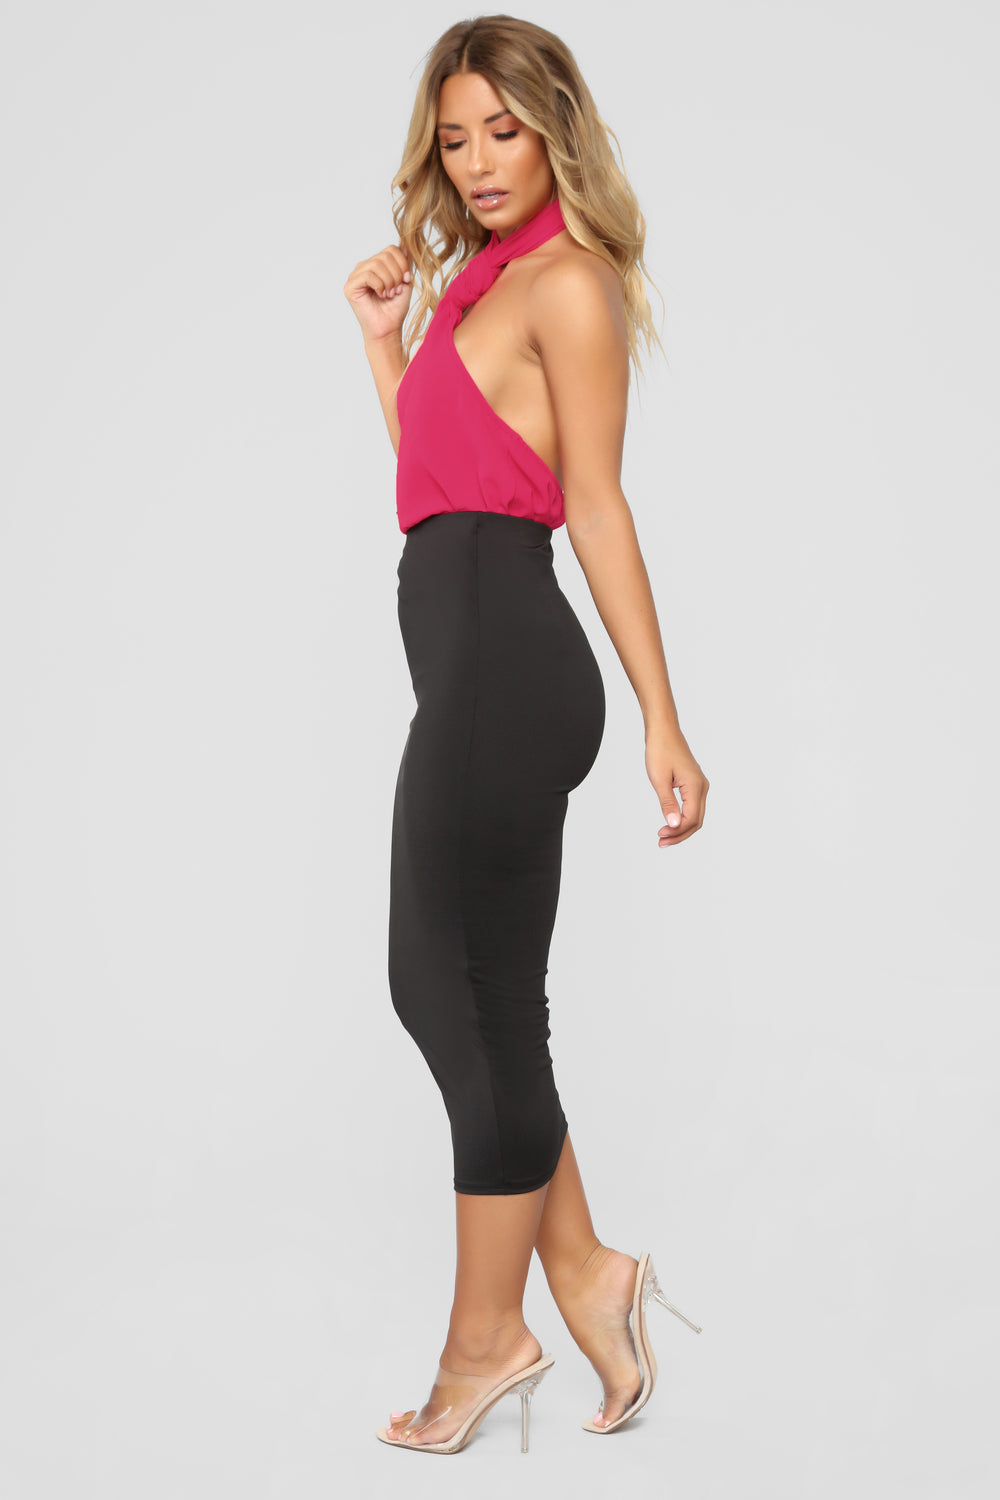 Sure Thing Knot Halter Top - Fuchsia